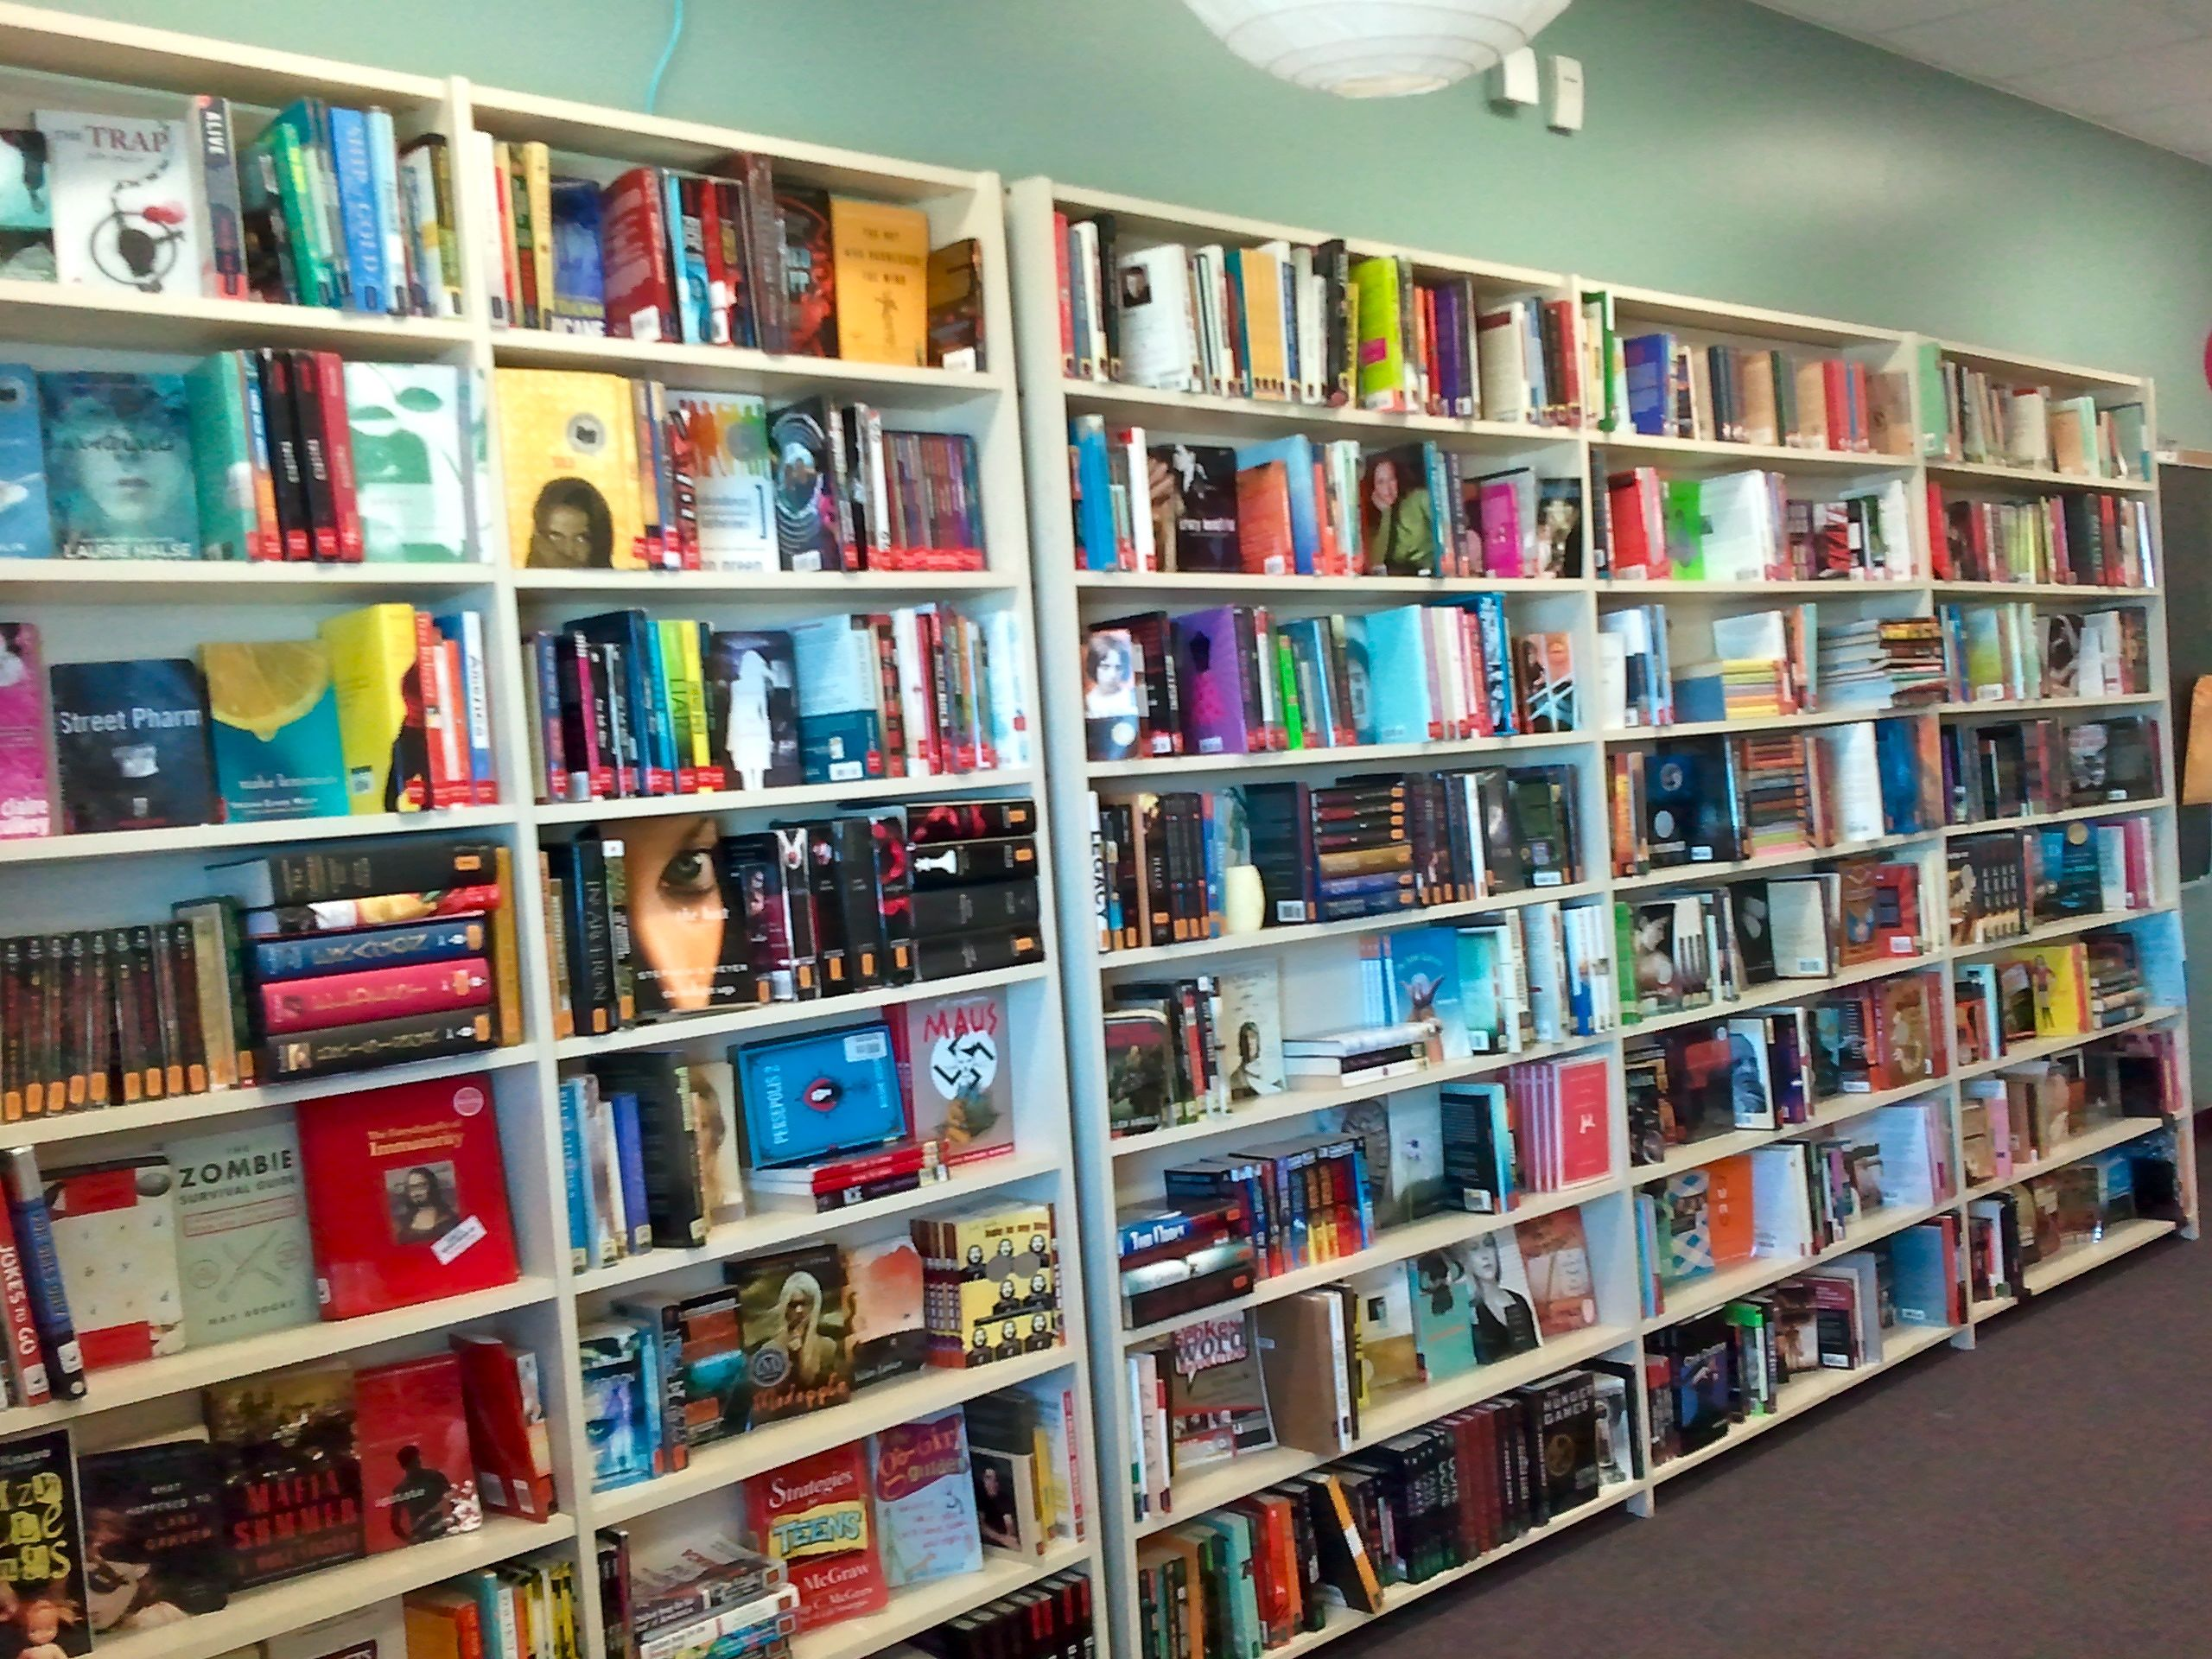 This High School teacher sets up bookshelves to look like the book store.  Now that